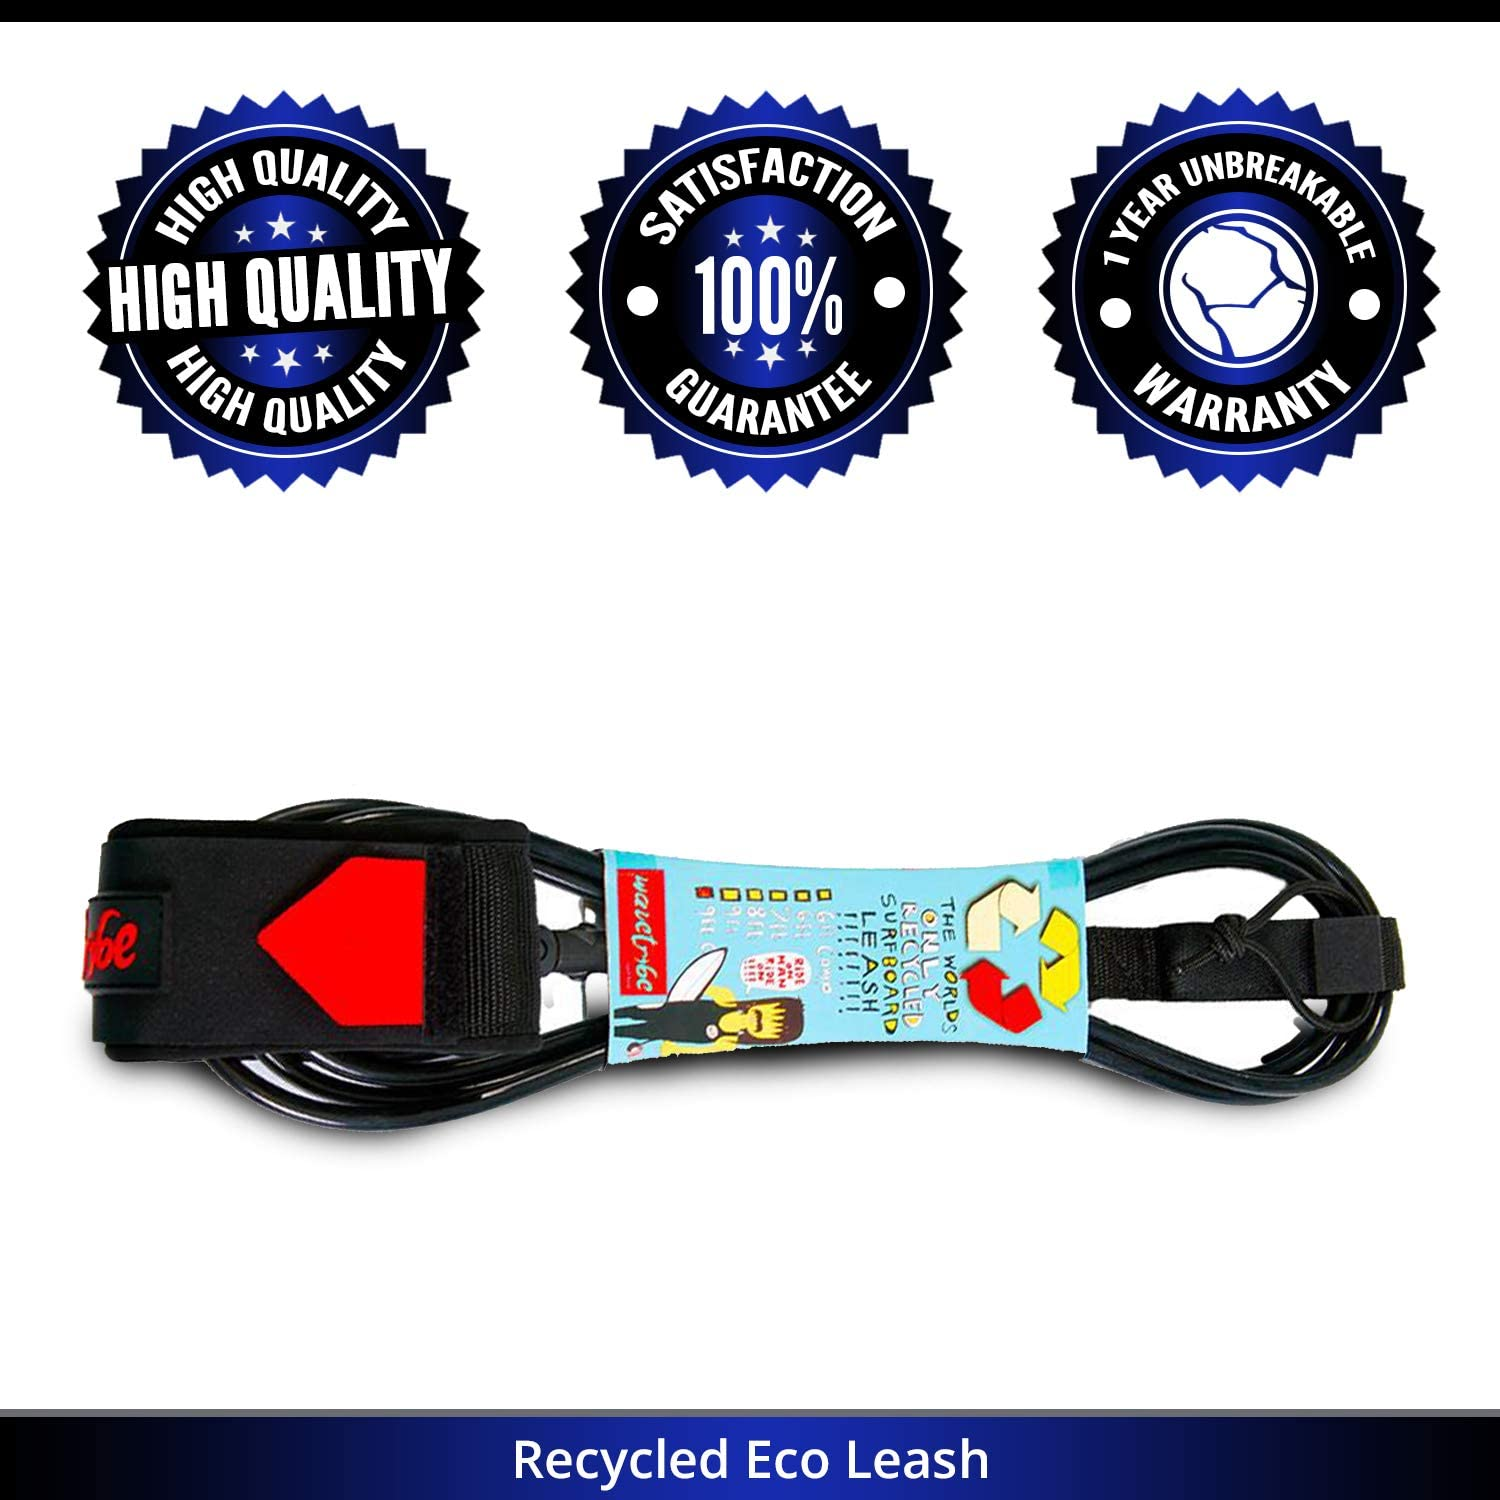 Stainless Steel Triple Swivel Wave Tribe ECO Surfboard Leash Strong Like Bull Never Break Leash Rope Key Pocket Premium Surf Leash Leash Good for Planet Rail Saver Heal The Oceans Campaign